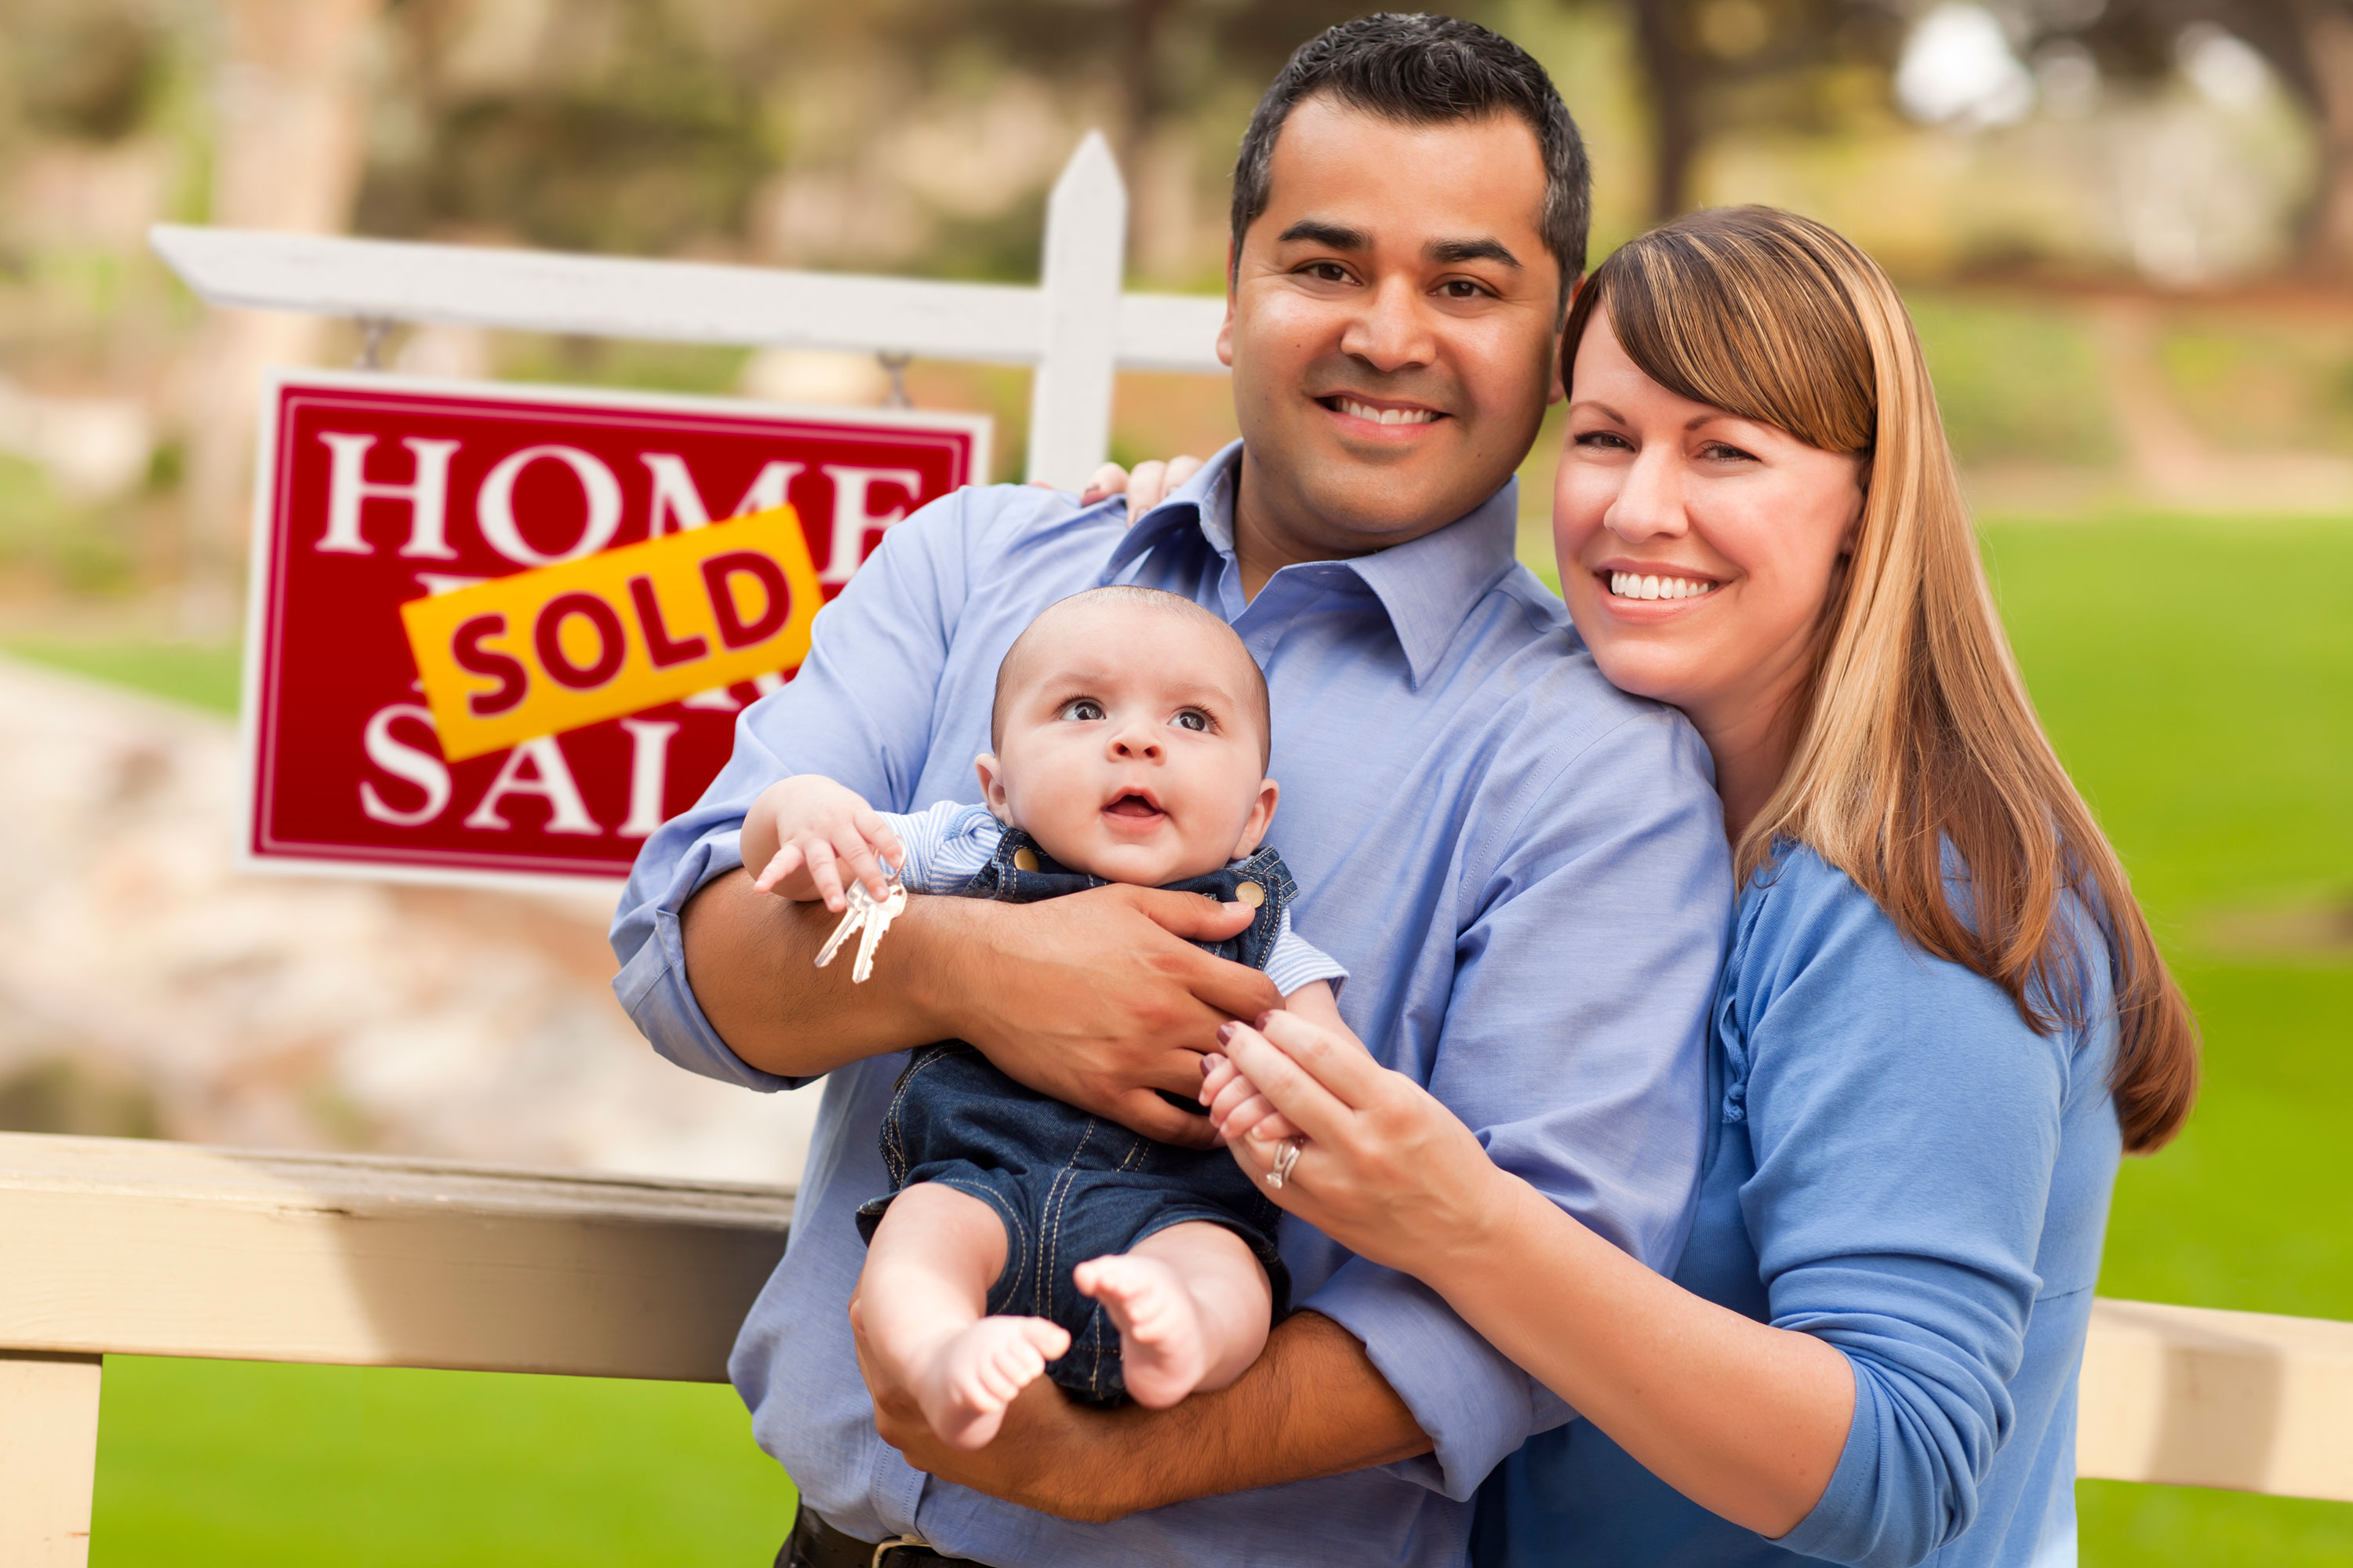 A Happy Johnson County, KS Family WINNING at real estate